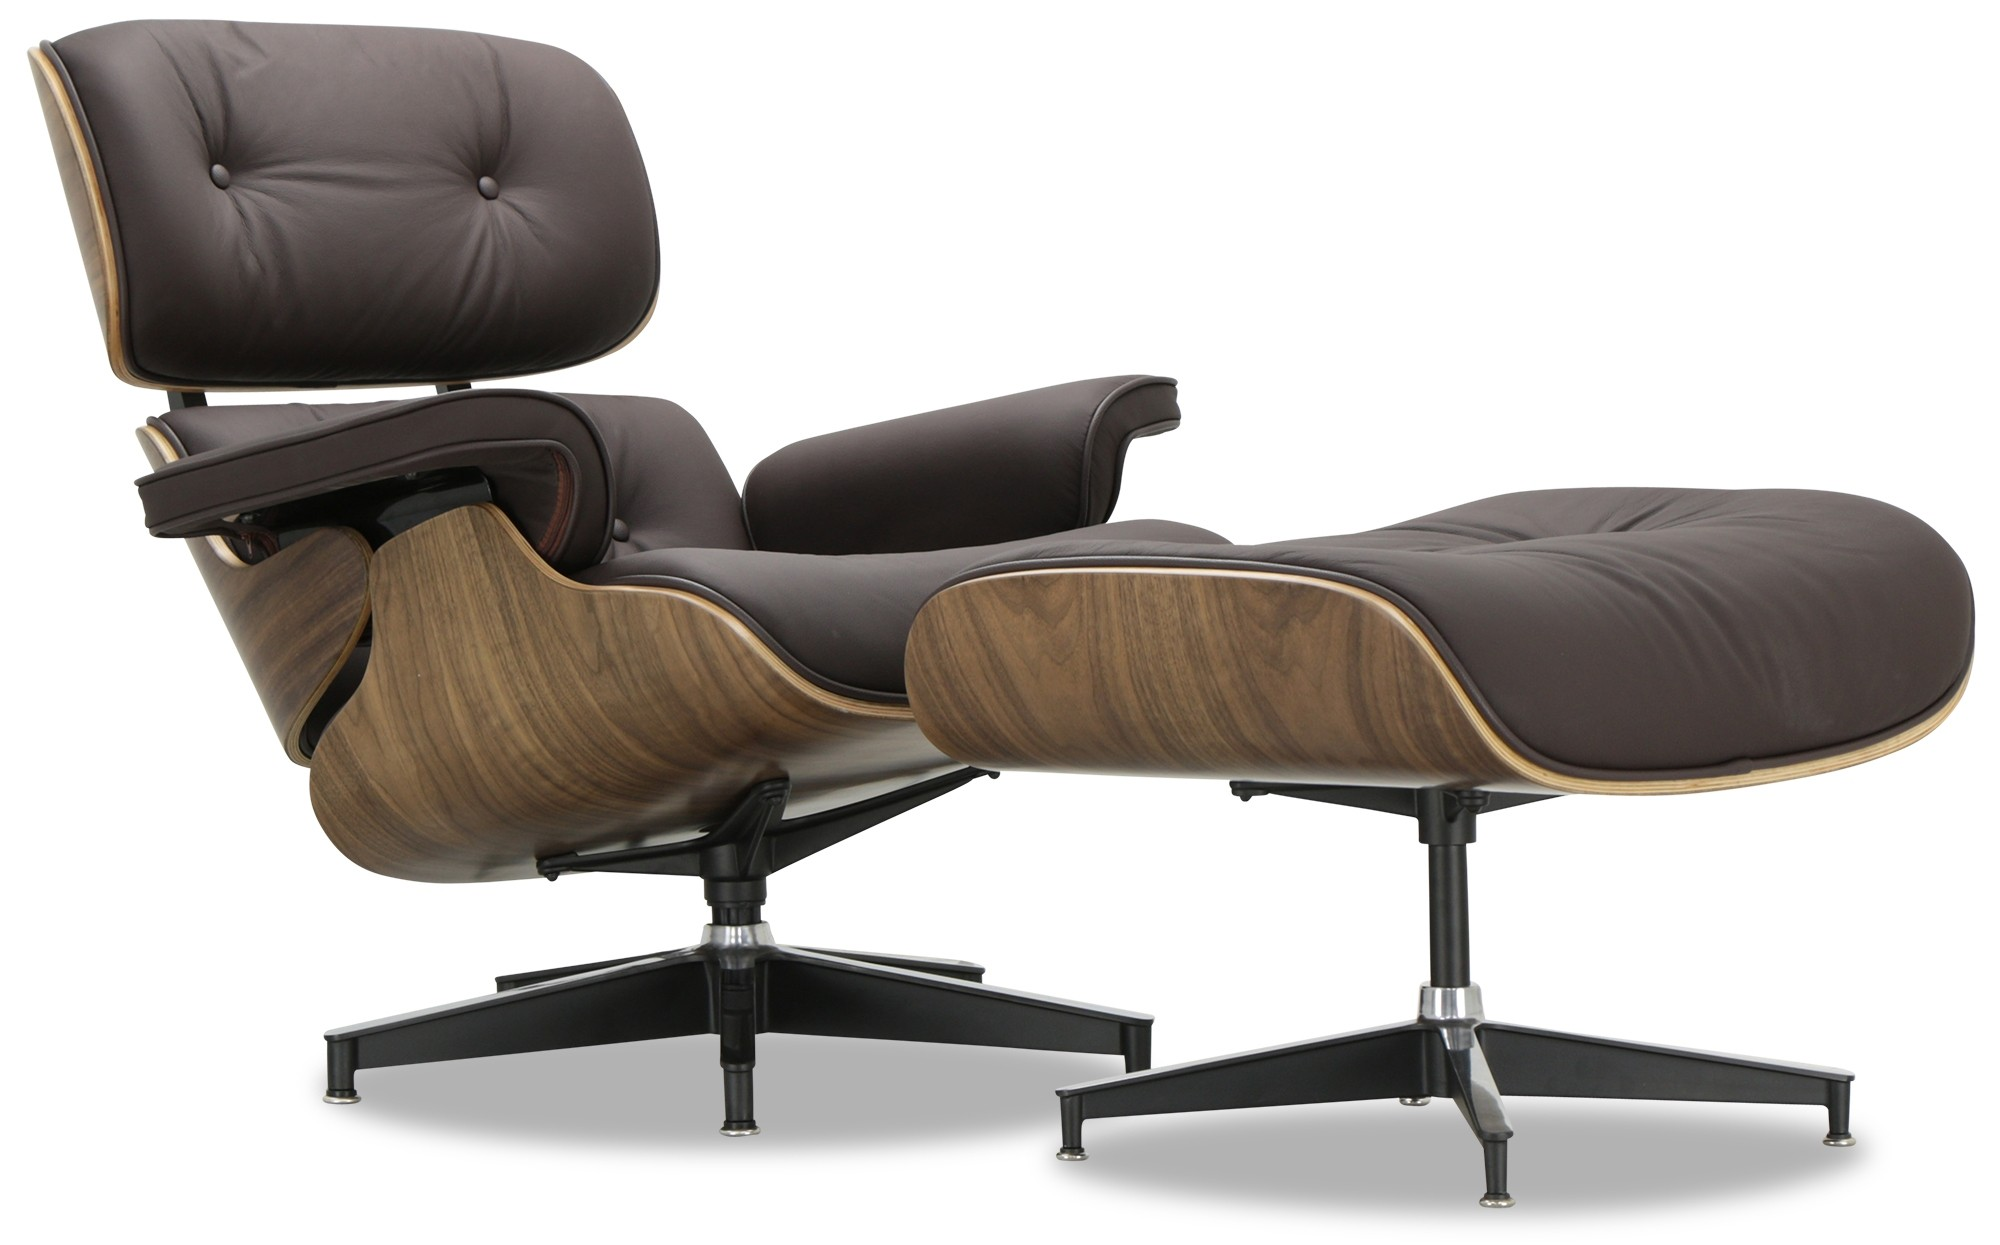 eames 2 seat sofa replica how to patch a tear in leather designer lounge chair dark brown